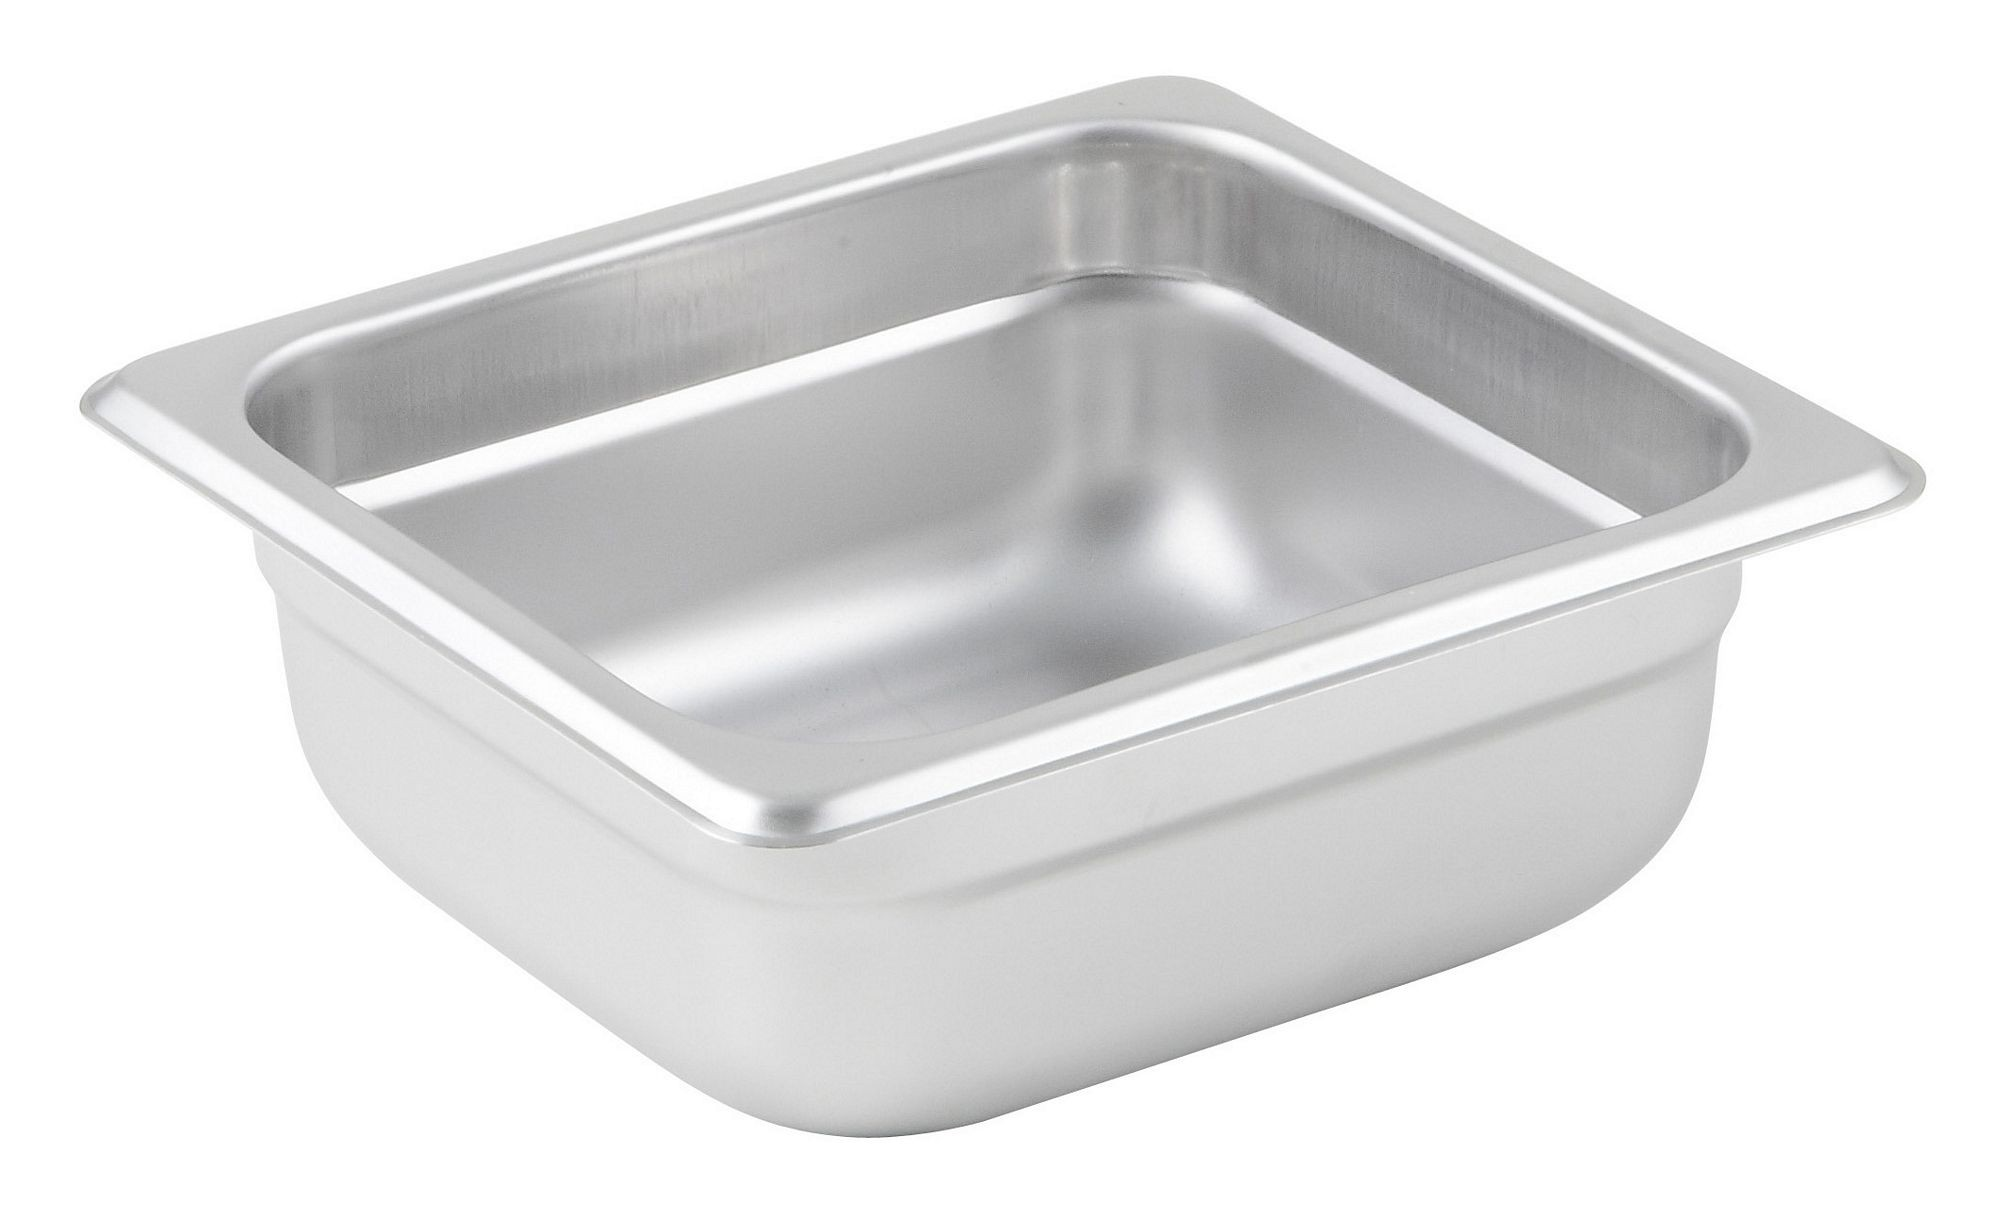 "Winco SPJP-602 1/6 Size Anti-Jam 23 Gauge Steam Table Pan 2-1/2"" Deep"